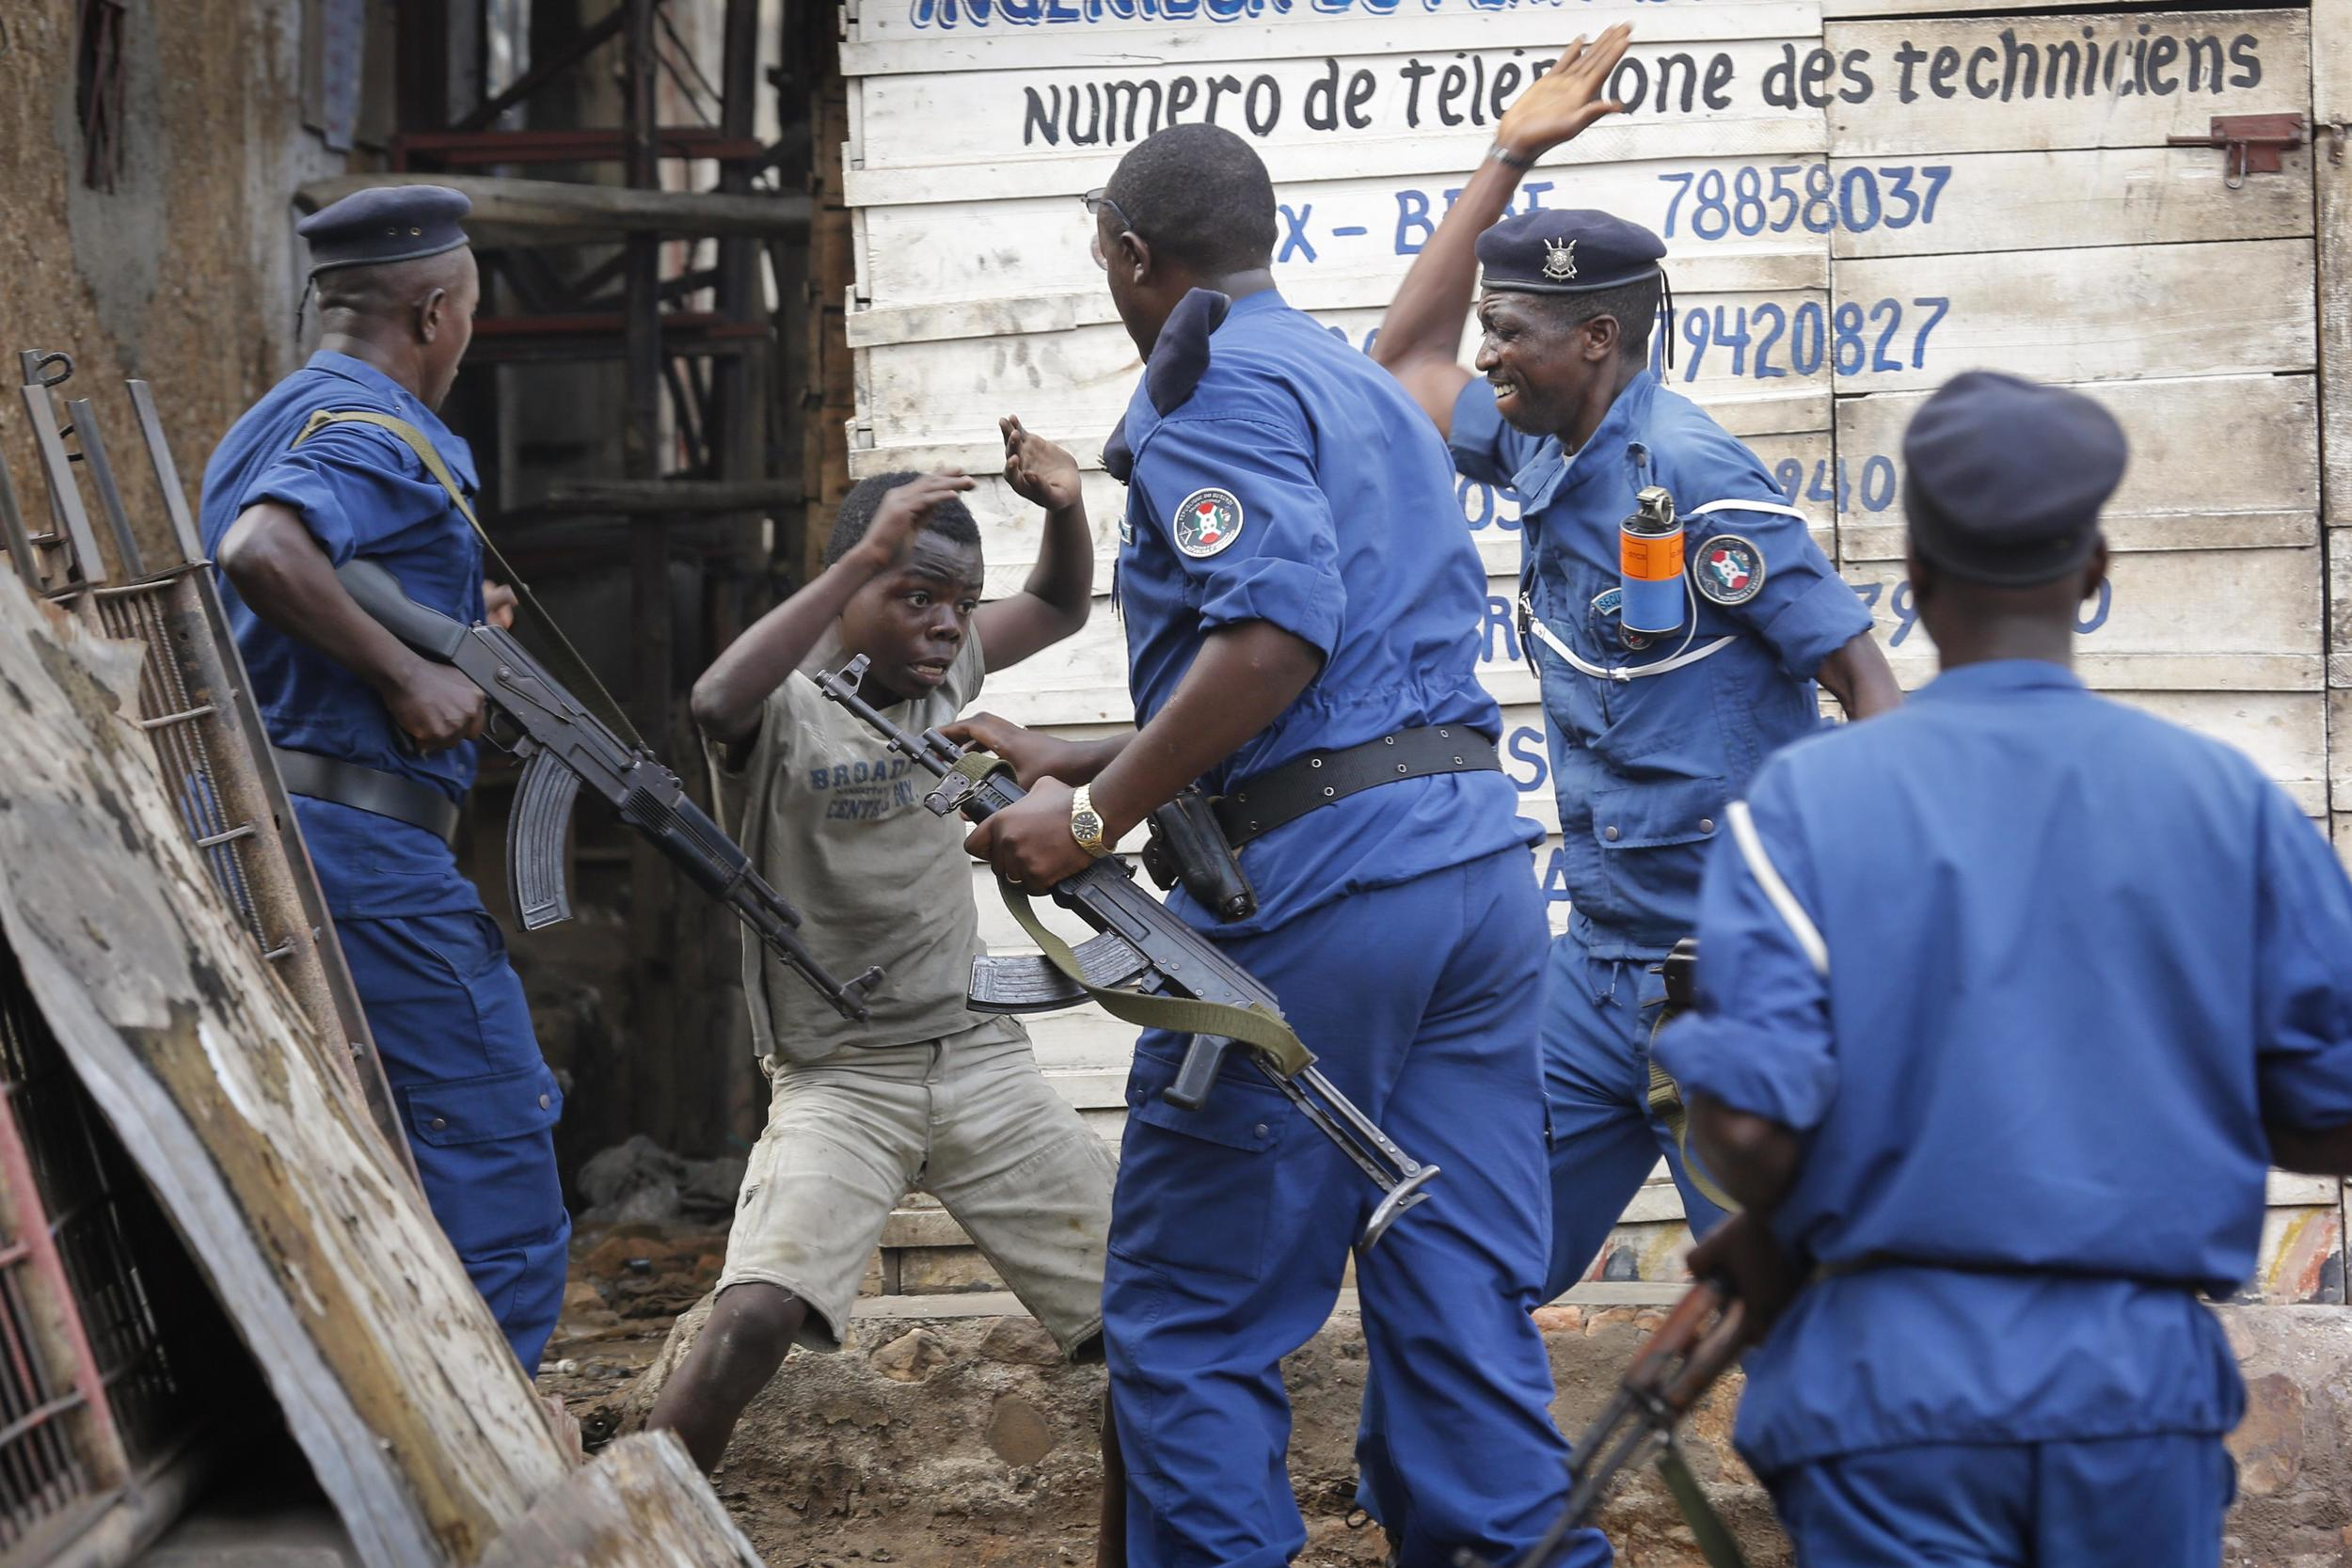 A young Burundian boy beaten by armed police officers during protest in Bujumbura over president's third term, 2015 photo by Dai Kurokawa / EPA